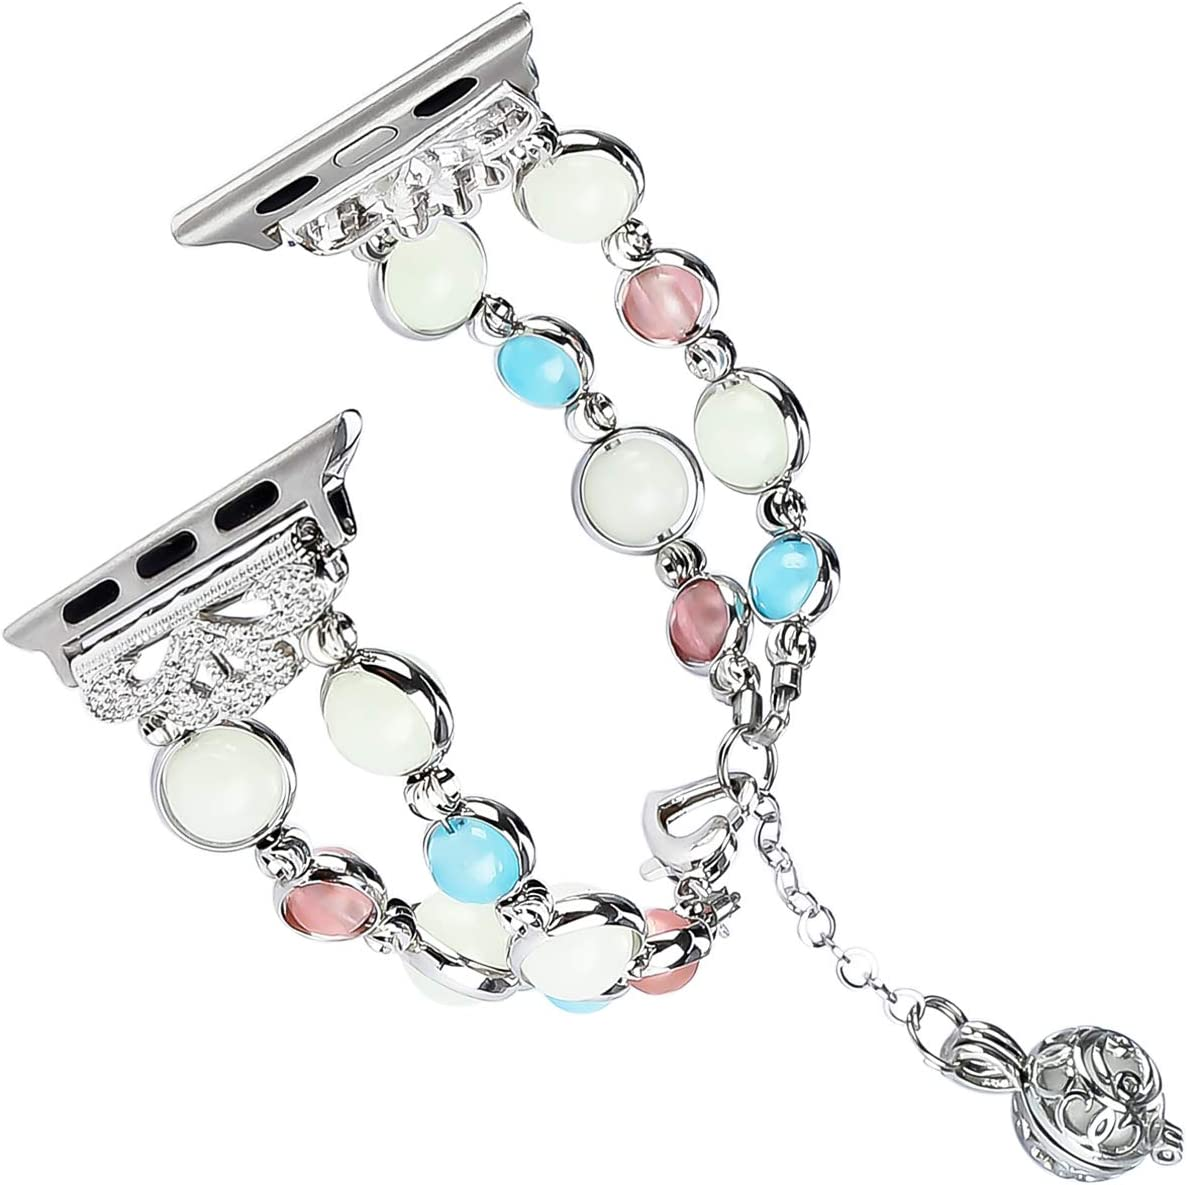 Tomazon Compatible Apple Watch Band Series 4/3/2/1 42mm 44mm, Unique Handmade Luminous Pearl Adjustable iWatch Bracelet Metal Link Wristband with Perfume Storage Pendant for Women Girl - White